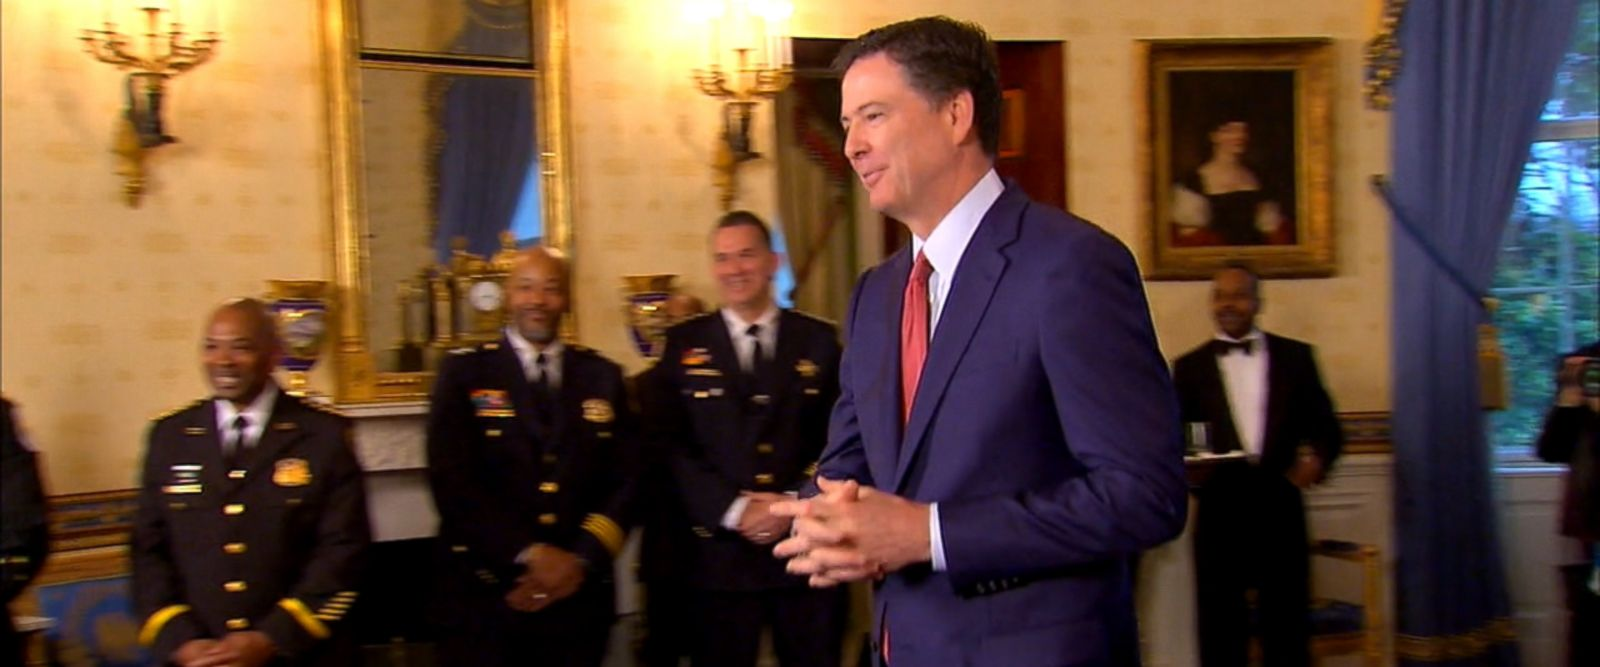 VIDEO: FBI Director James Comey has told top FBI officials that President Trump asked him to stay on as head of the bureau. Comey told the officials on a conference call in recent days.